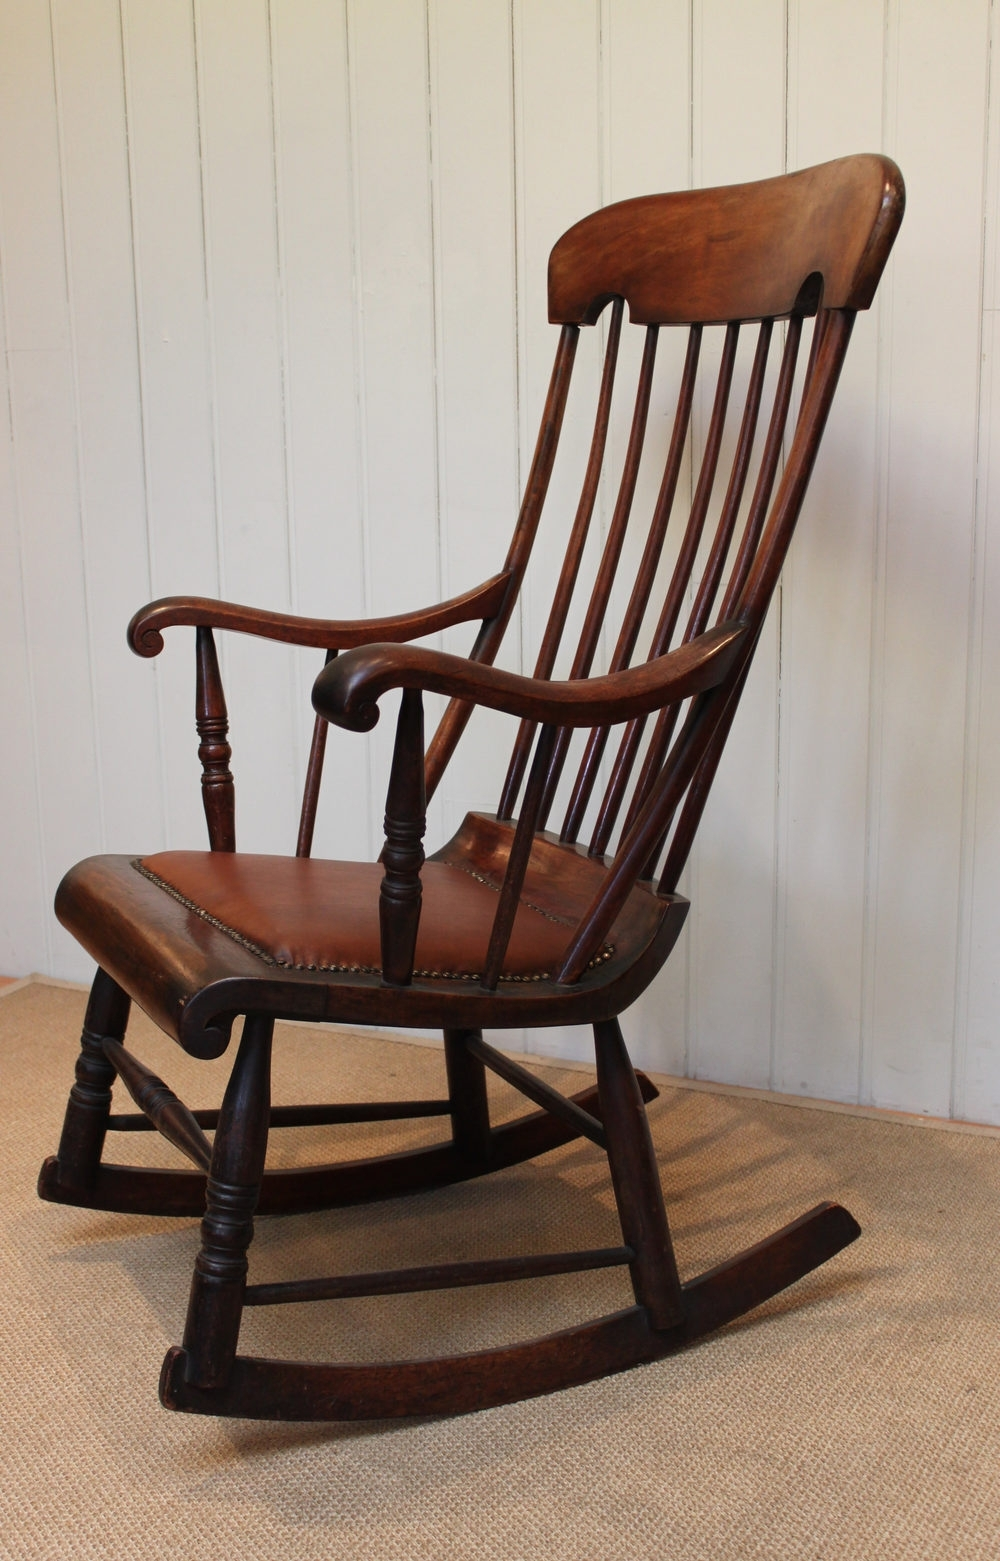 Favorite Victorian Fruitwood Rocking Chair – Antiques Atlas For Victorian Rocking Chairs (View 6 of 20)